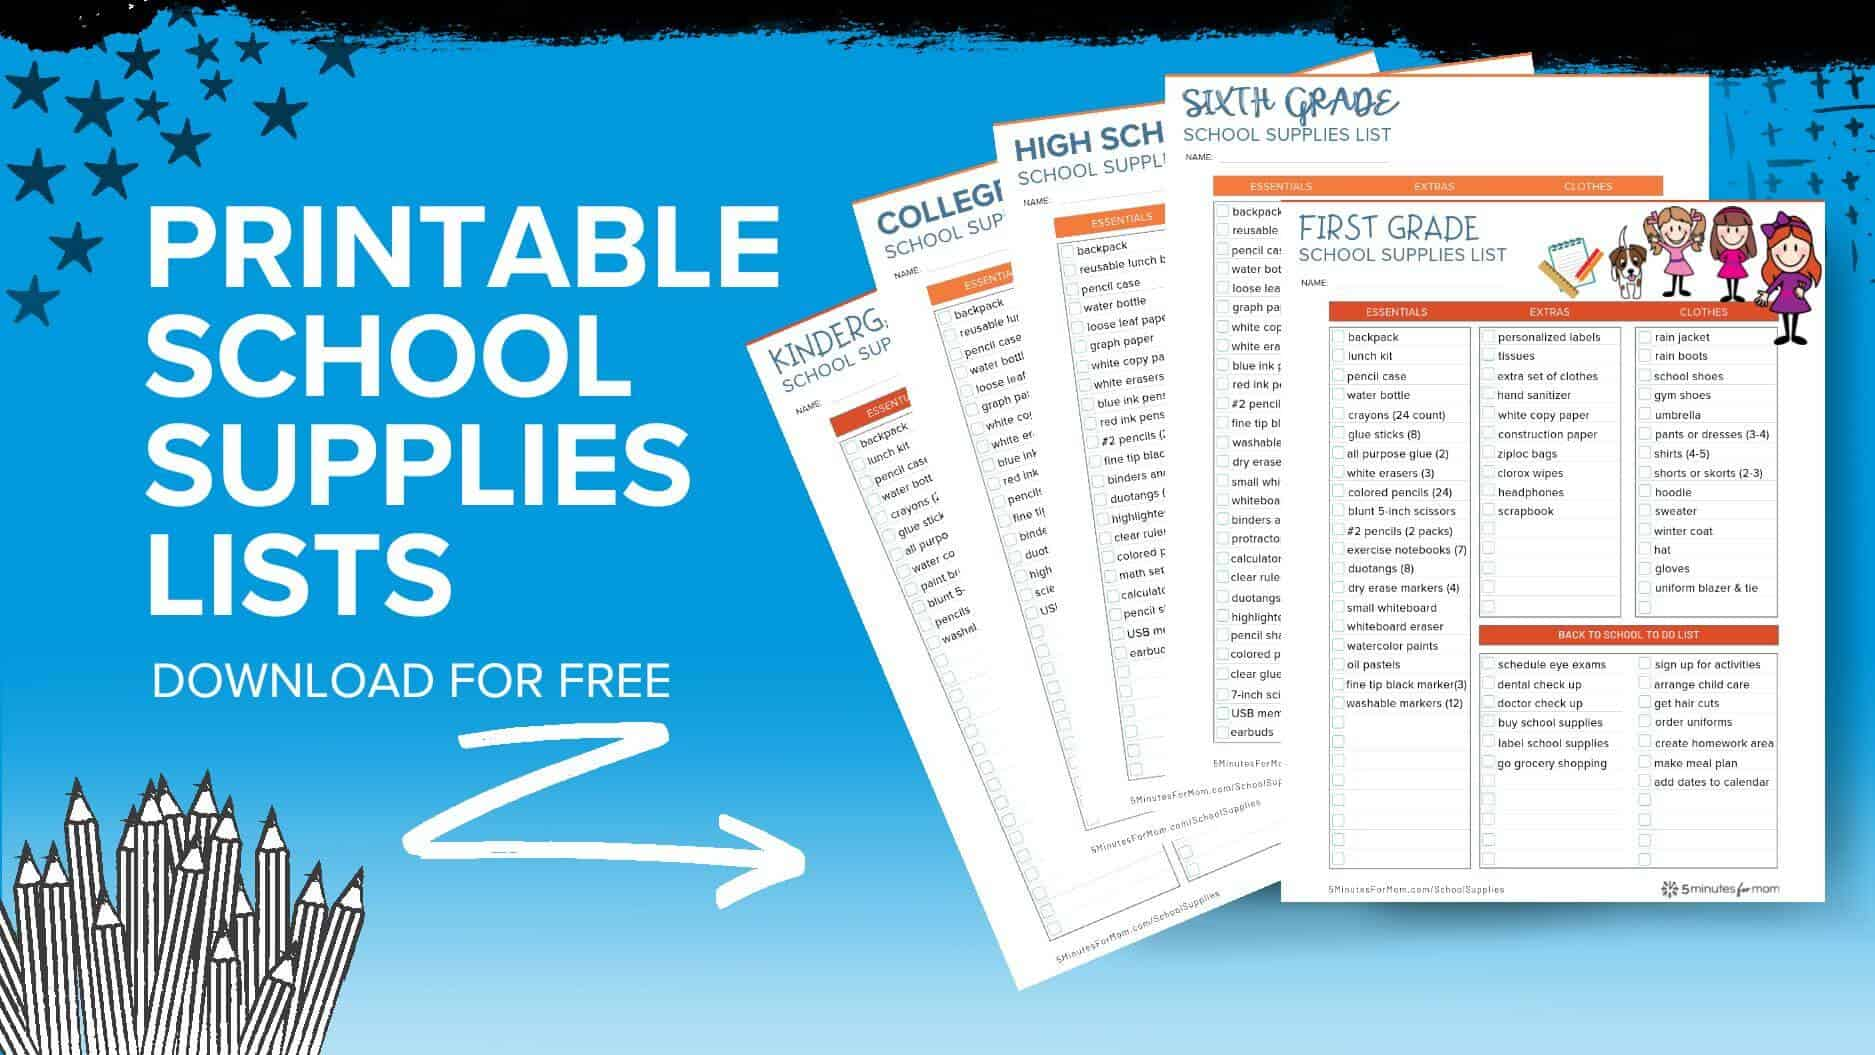 School Supplies List - Printable school supply lists for all grades